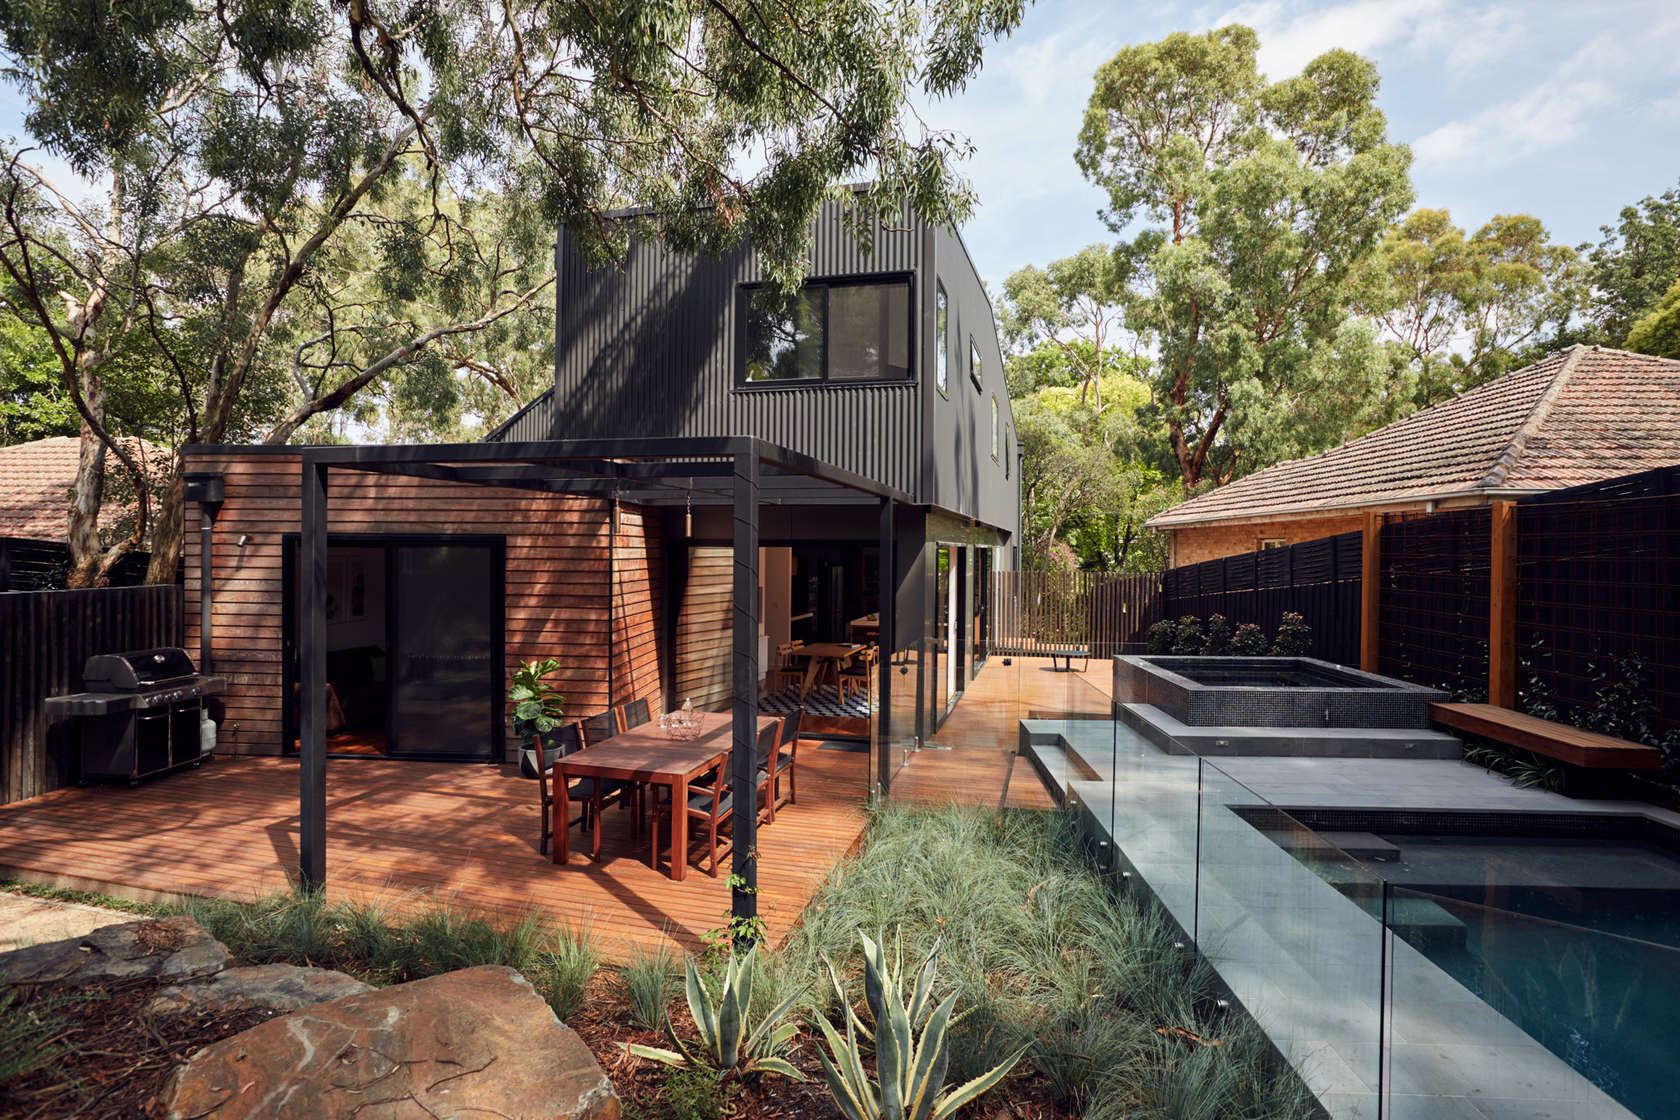 Home among the gum trees makes the most of a sloped site for Blackburn home